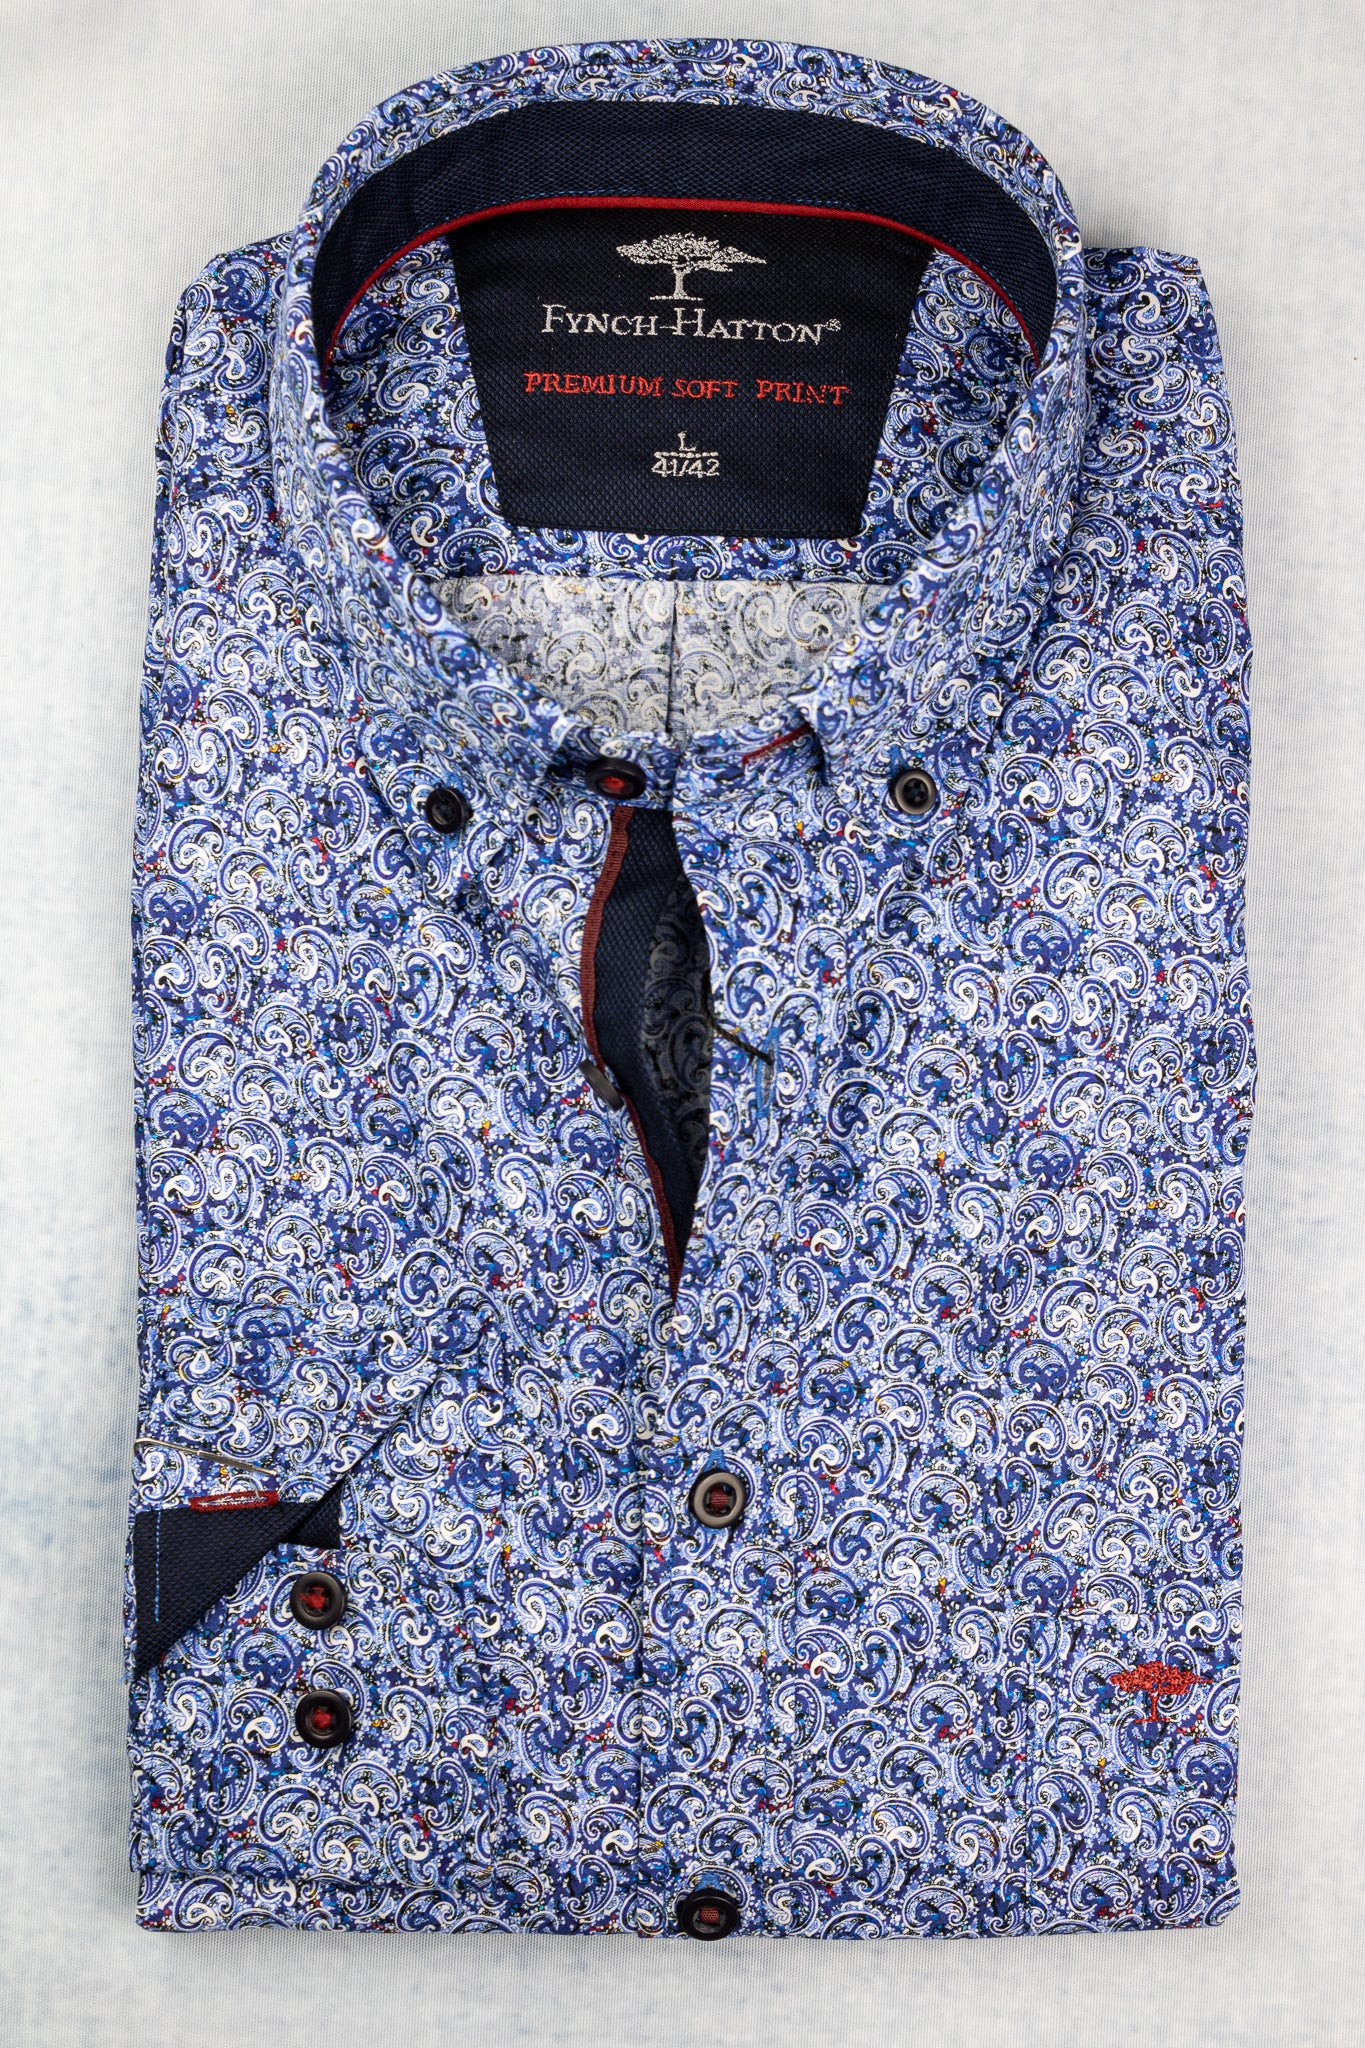 1220 6110 Fynch Hatton Blue Printed Men's Shirt for sale online Ireland